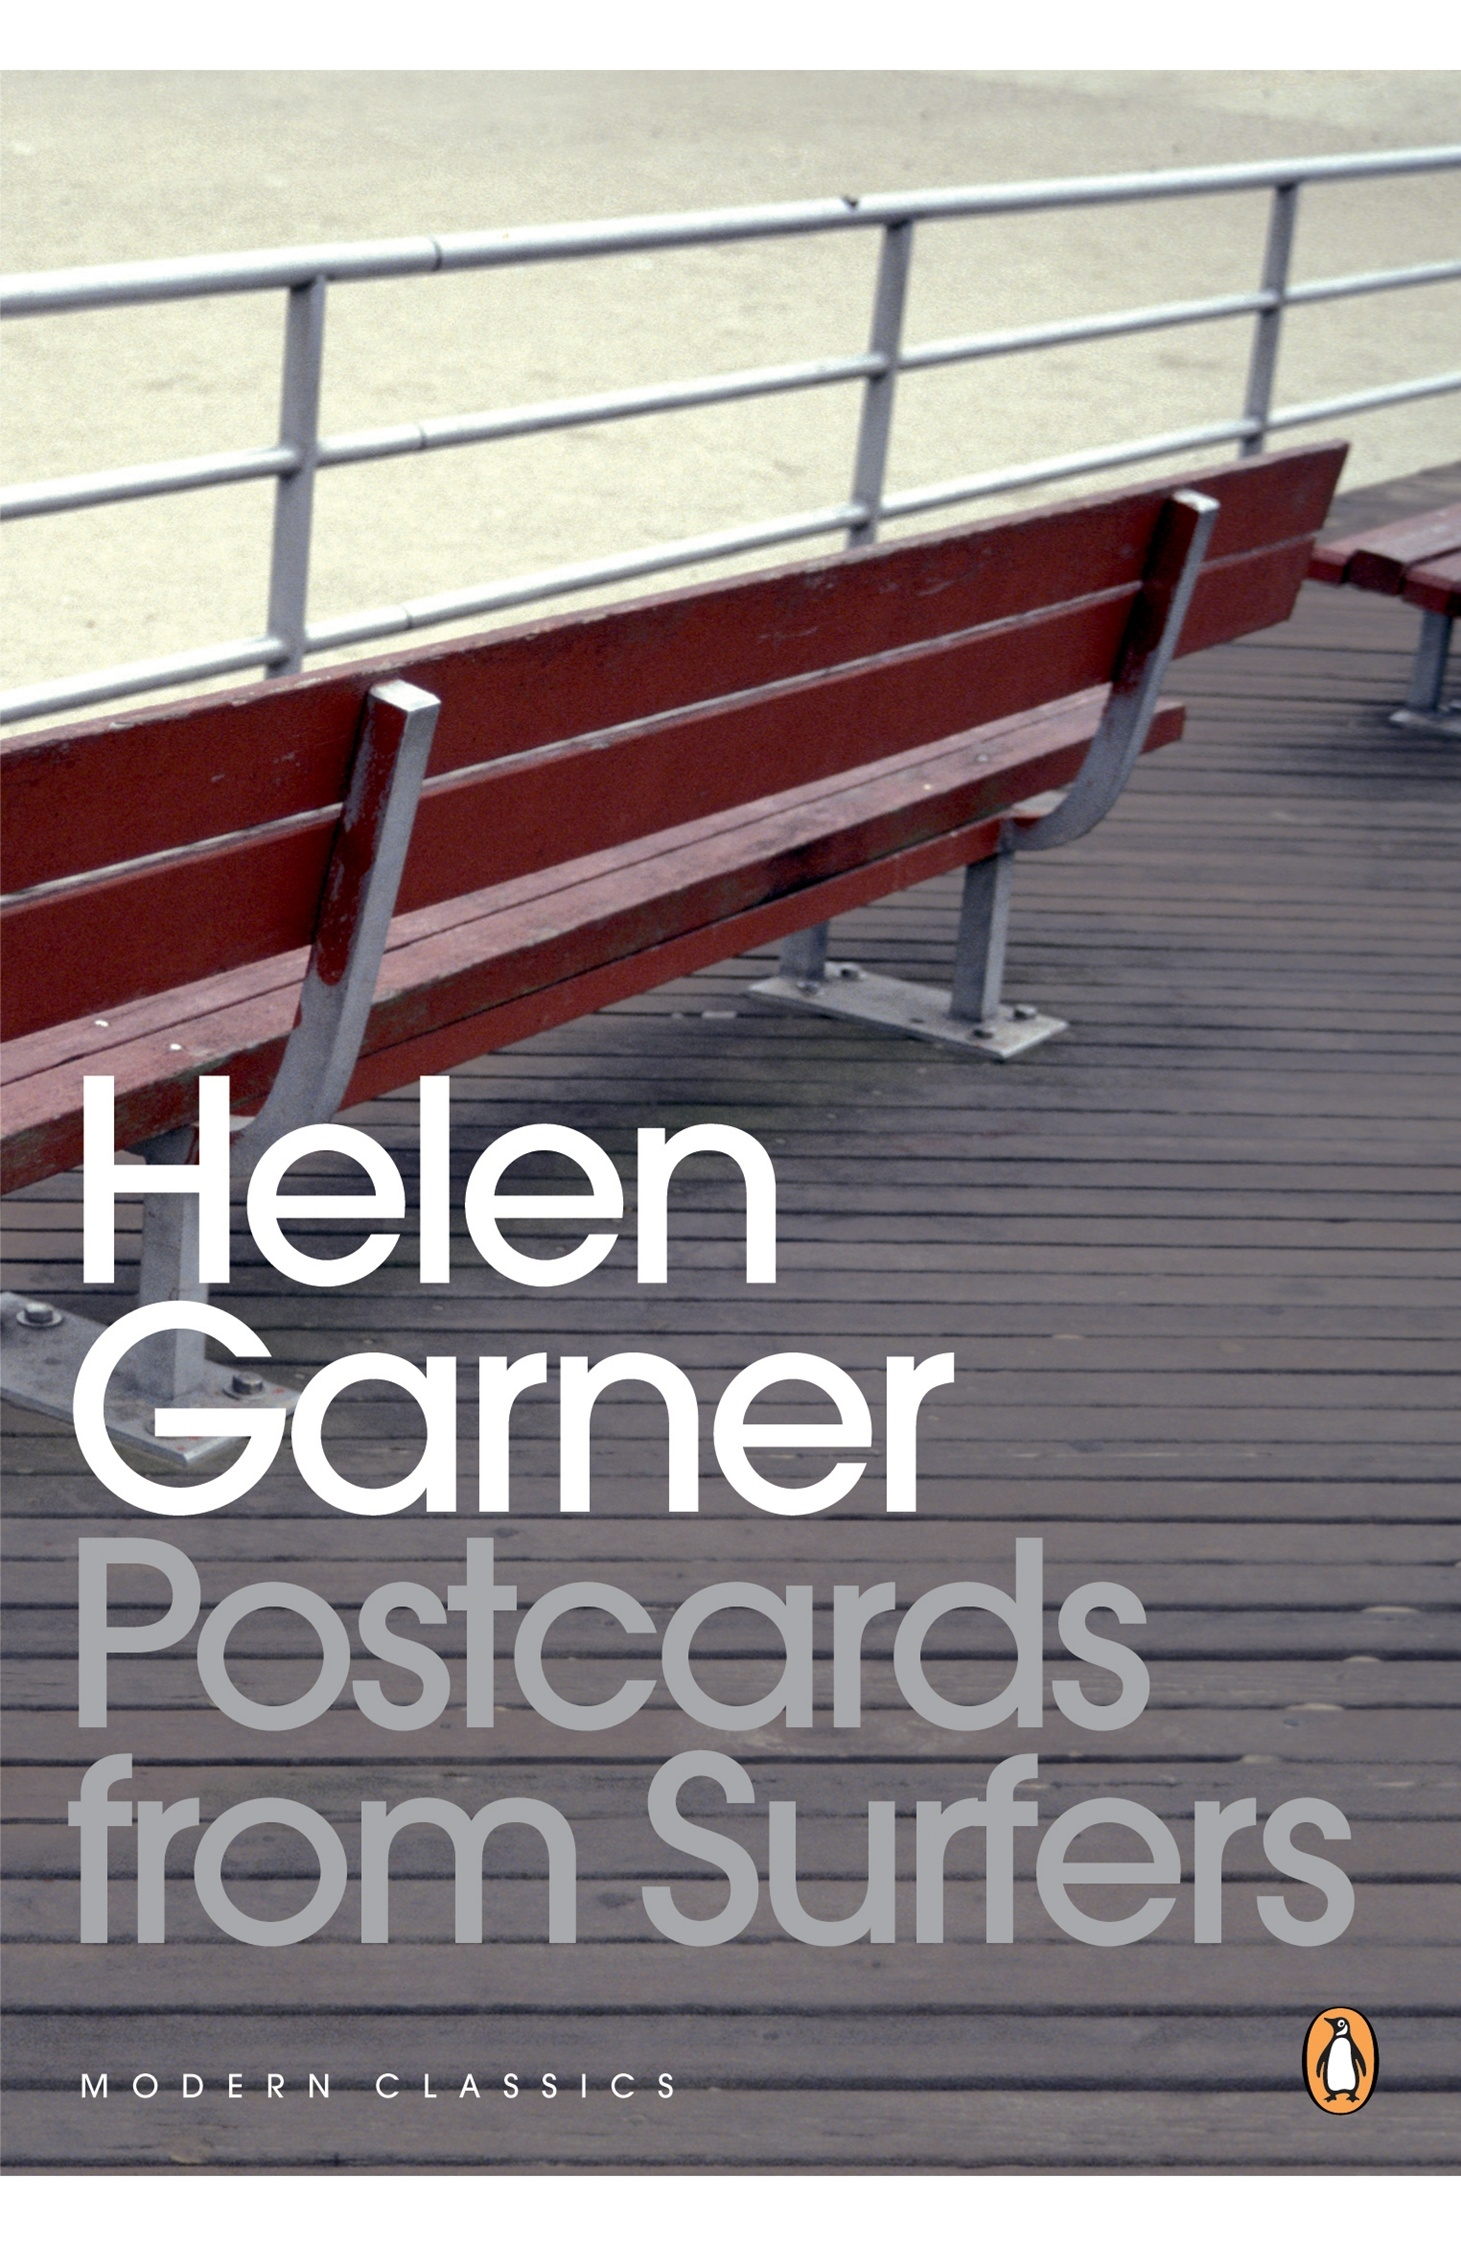 postcards from surfers by helen garner